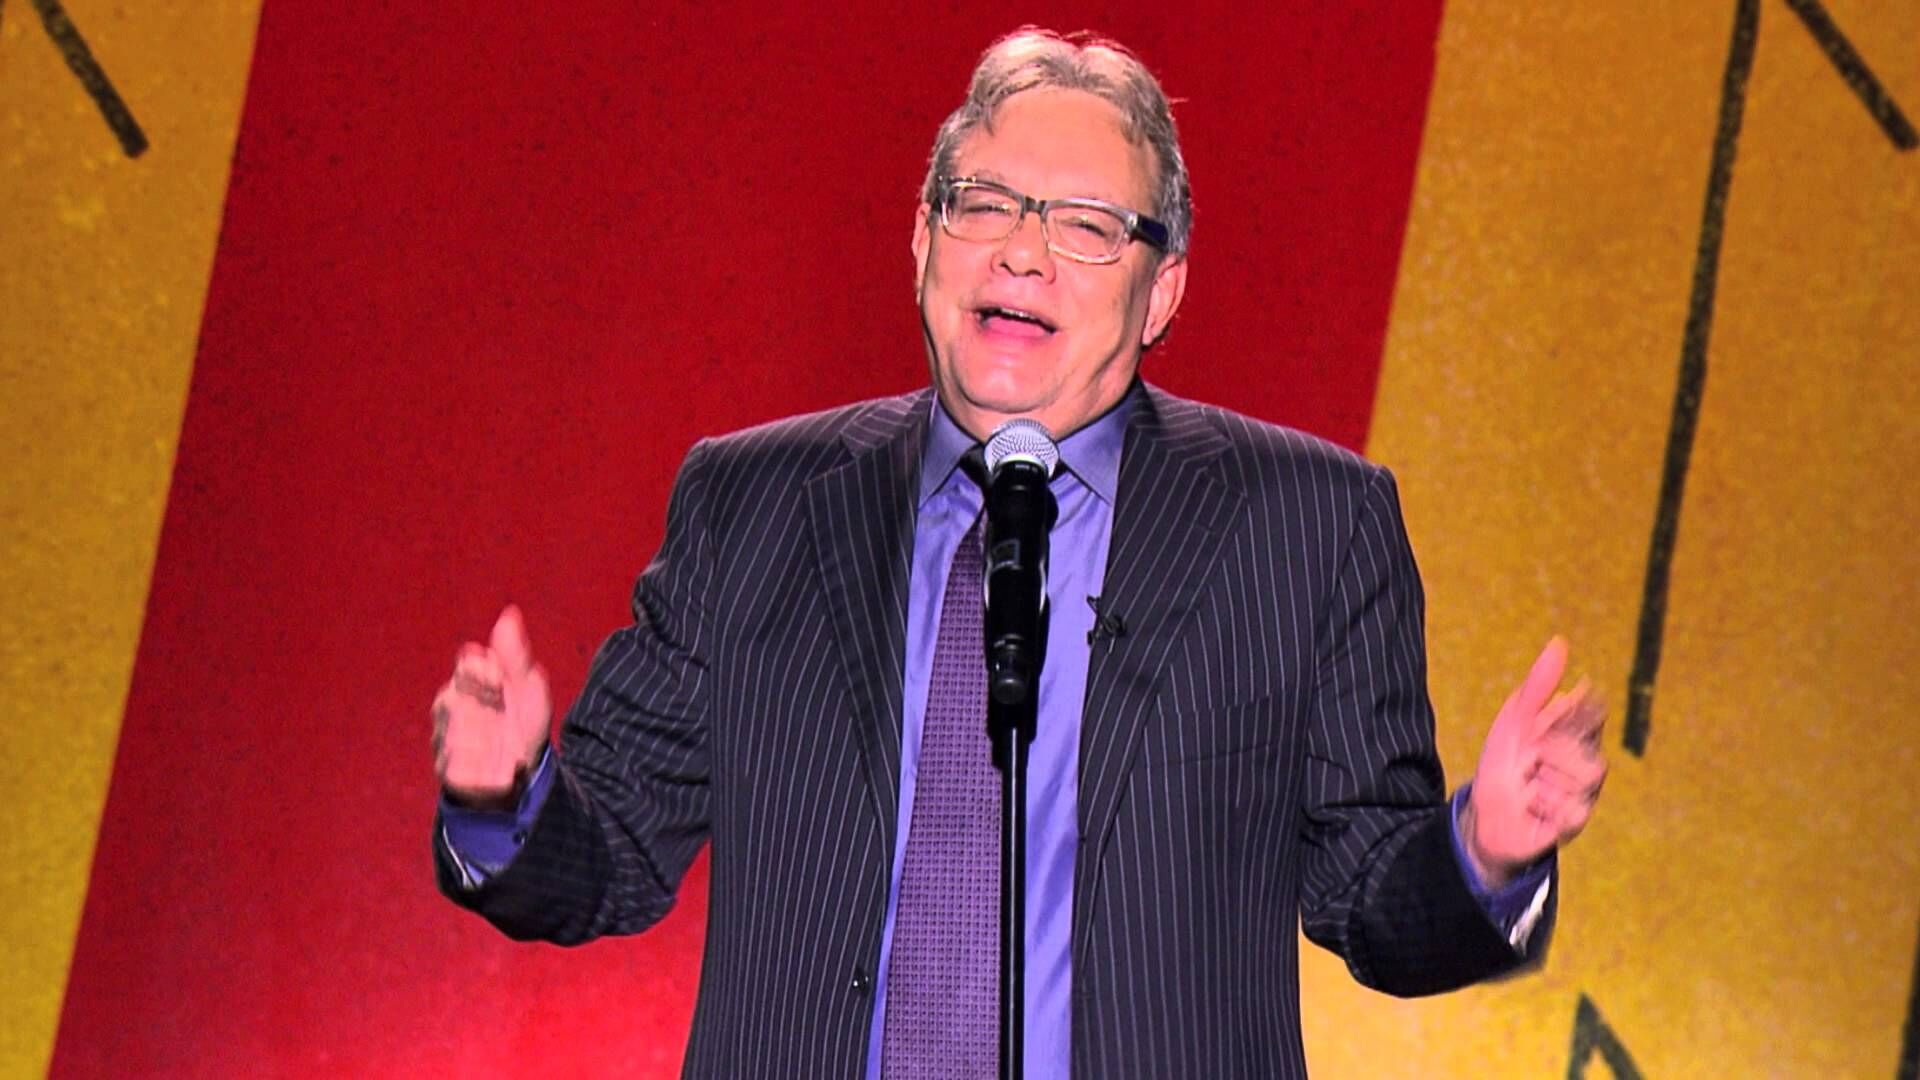 best stand up comedy specials on netflix lewis black old yeller joins rankings. Black Bedroom Furniture Sets. Home Design Ideas